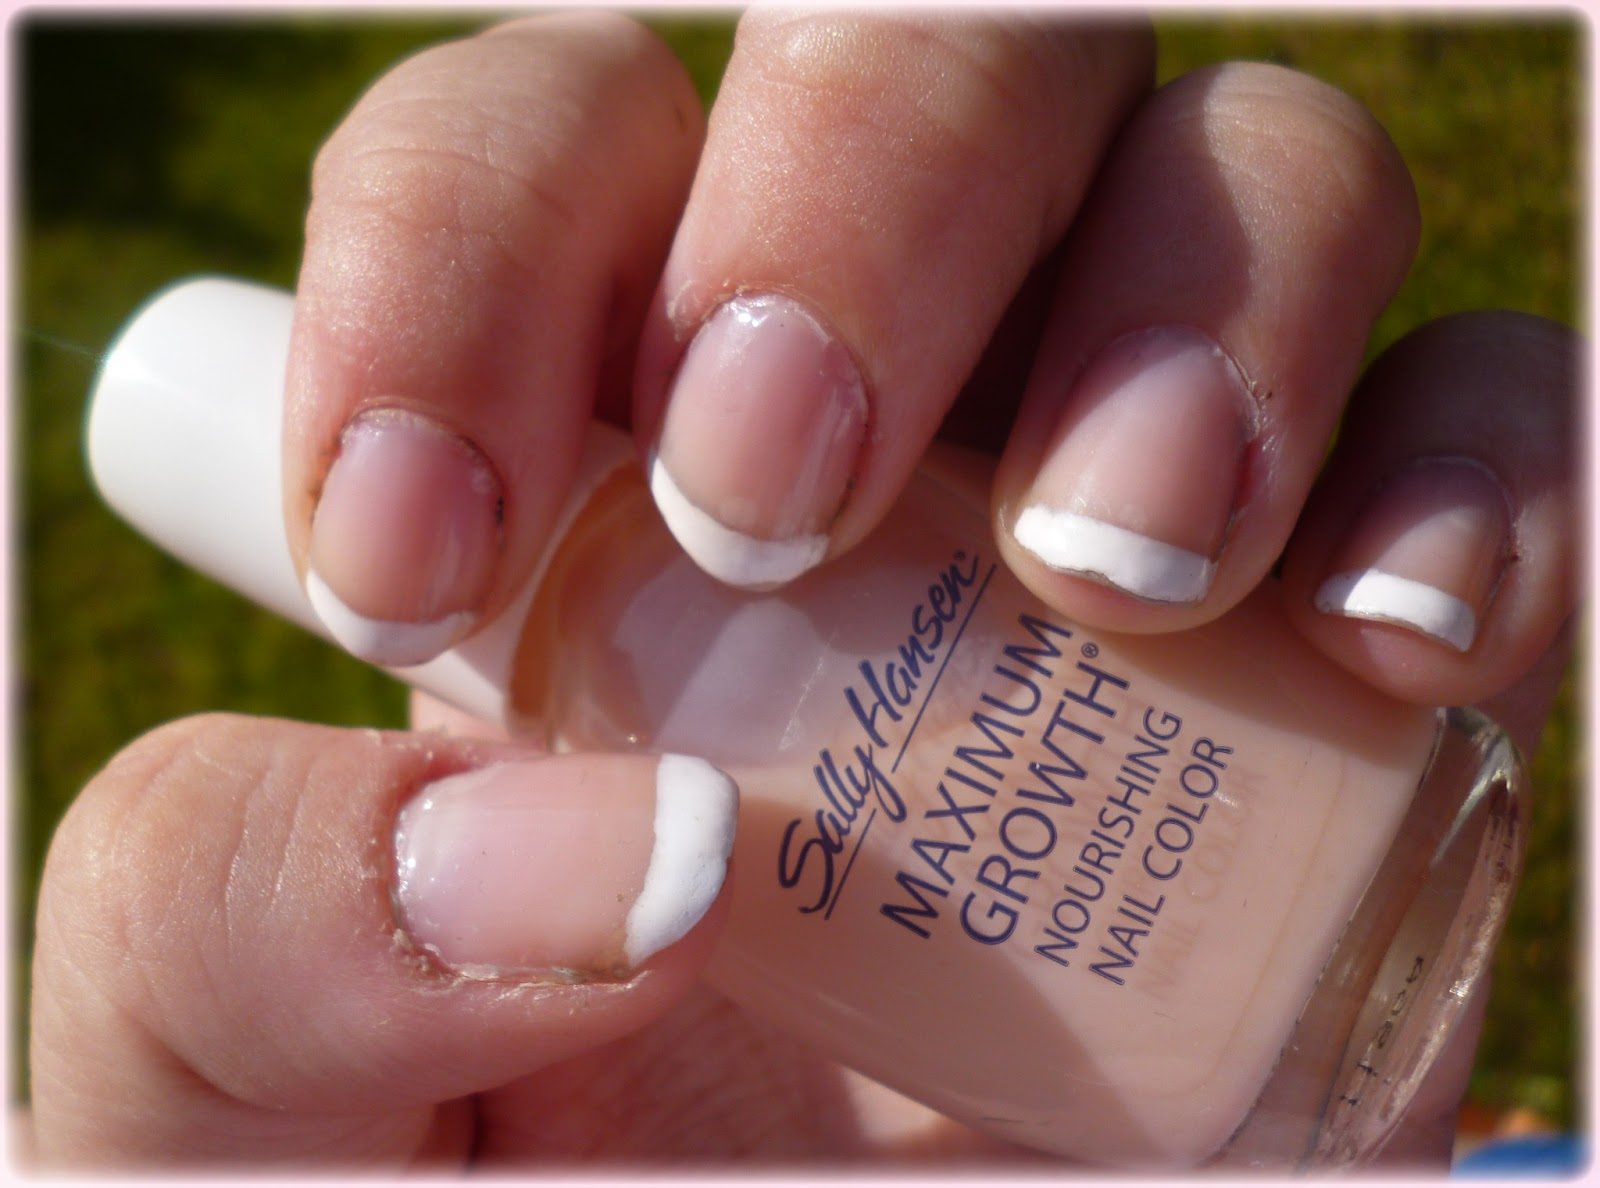 GraciiousMe: NOTW - Sally Hansen French Manicure Kit